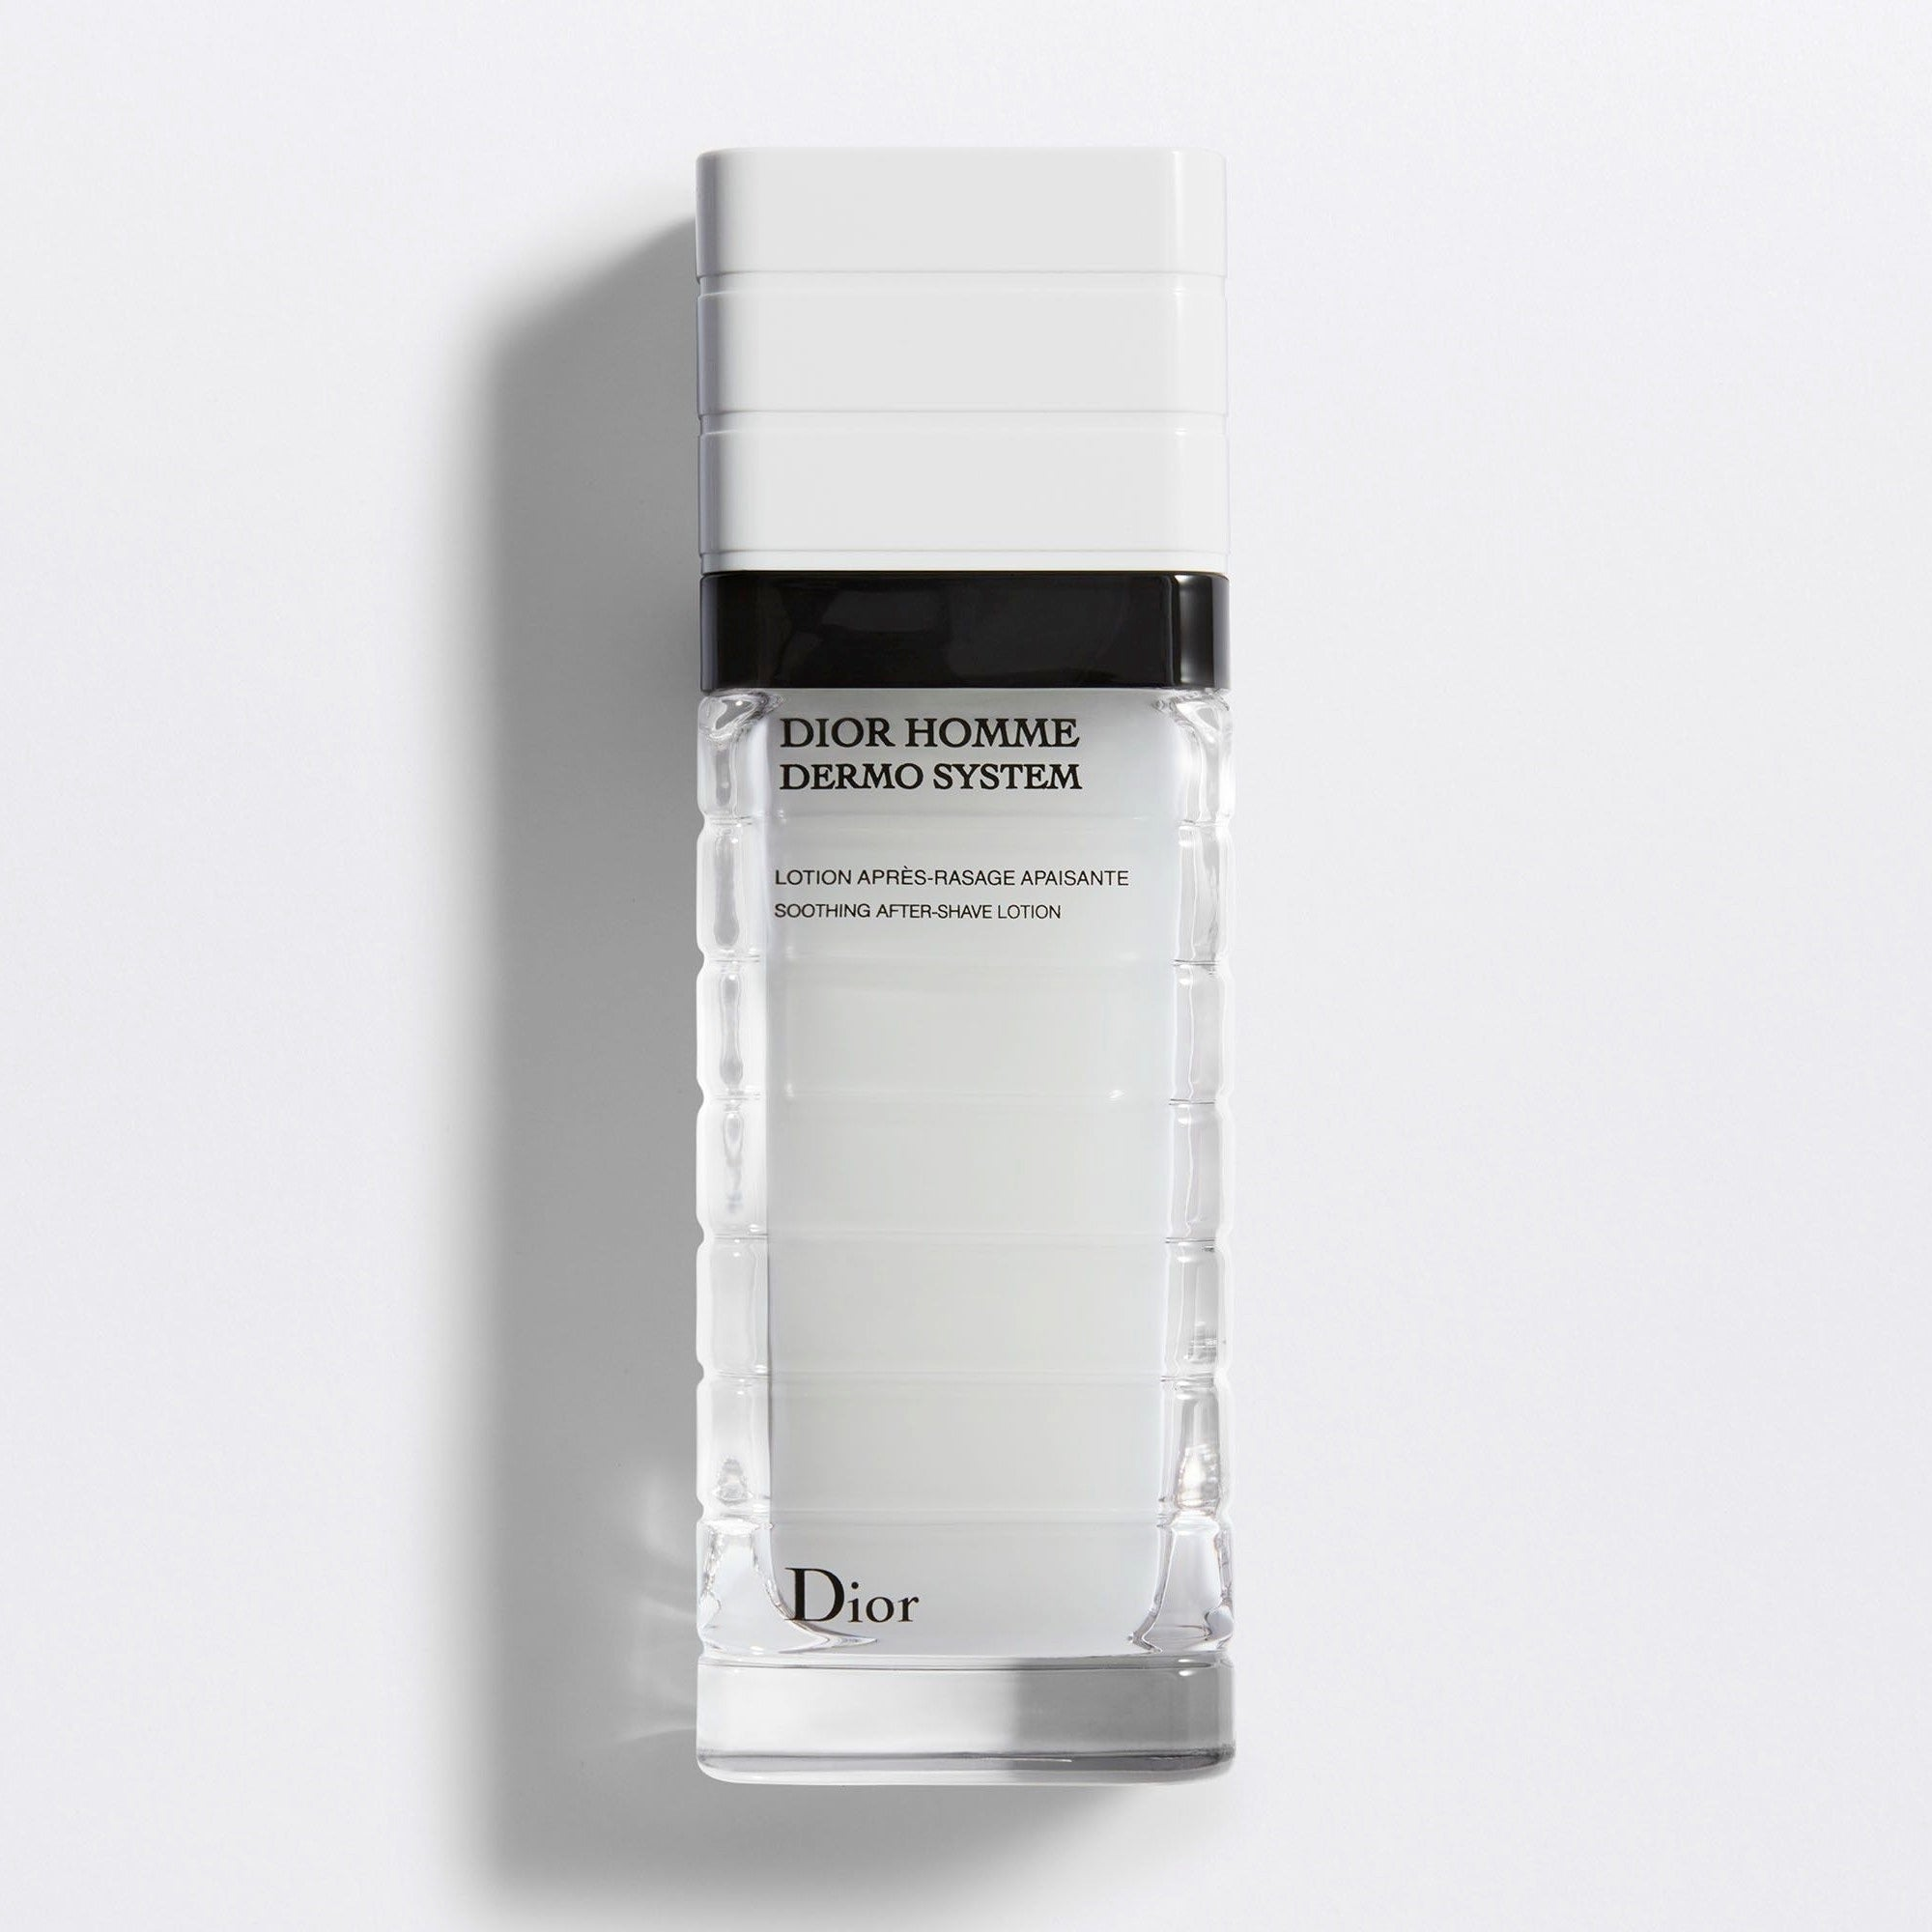 DIOR HOMME DERMO SYSTEM | Soothing After-Shave Lotion - Bio-Fermented Ingredient & Vitamin E Phosphate